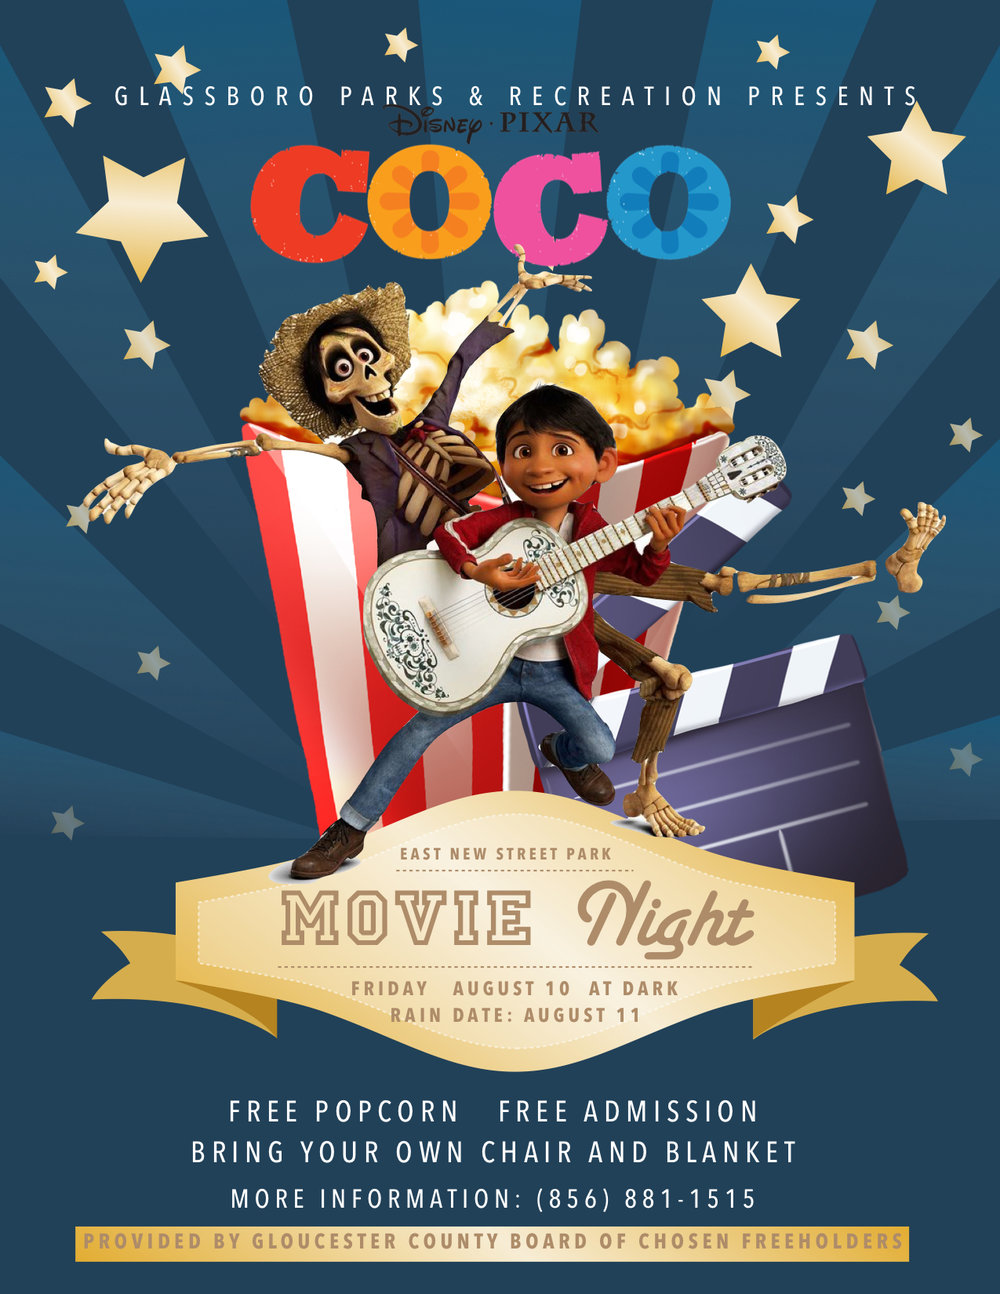 MOVIE NIGHT IN GLASSBORO COCO August 10, 2018.jpeg